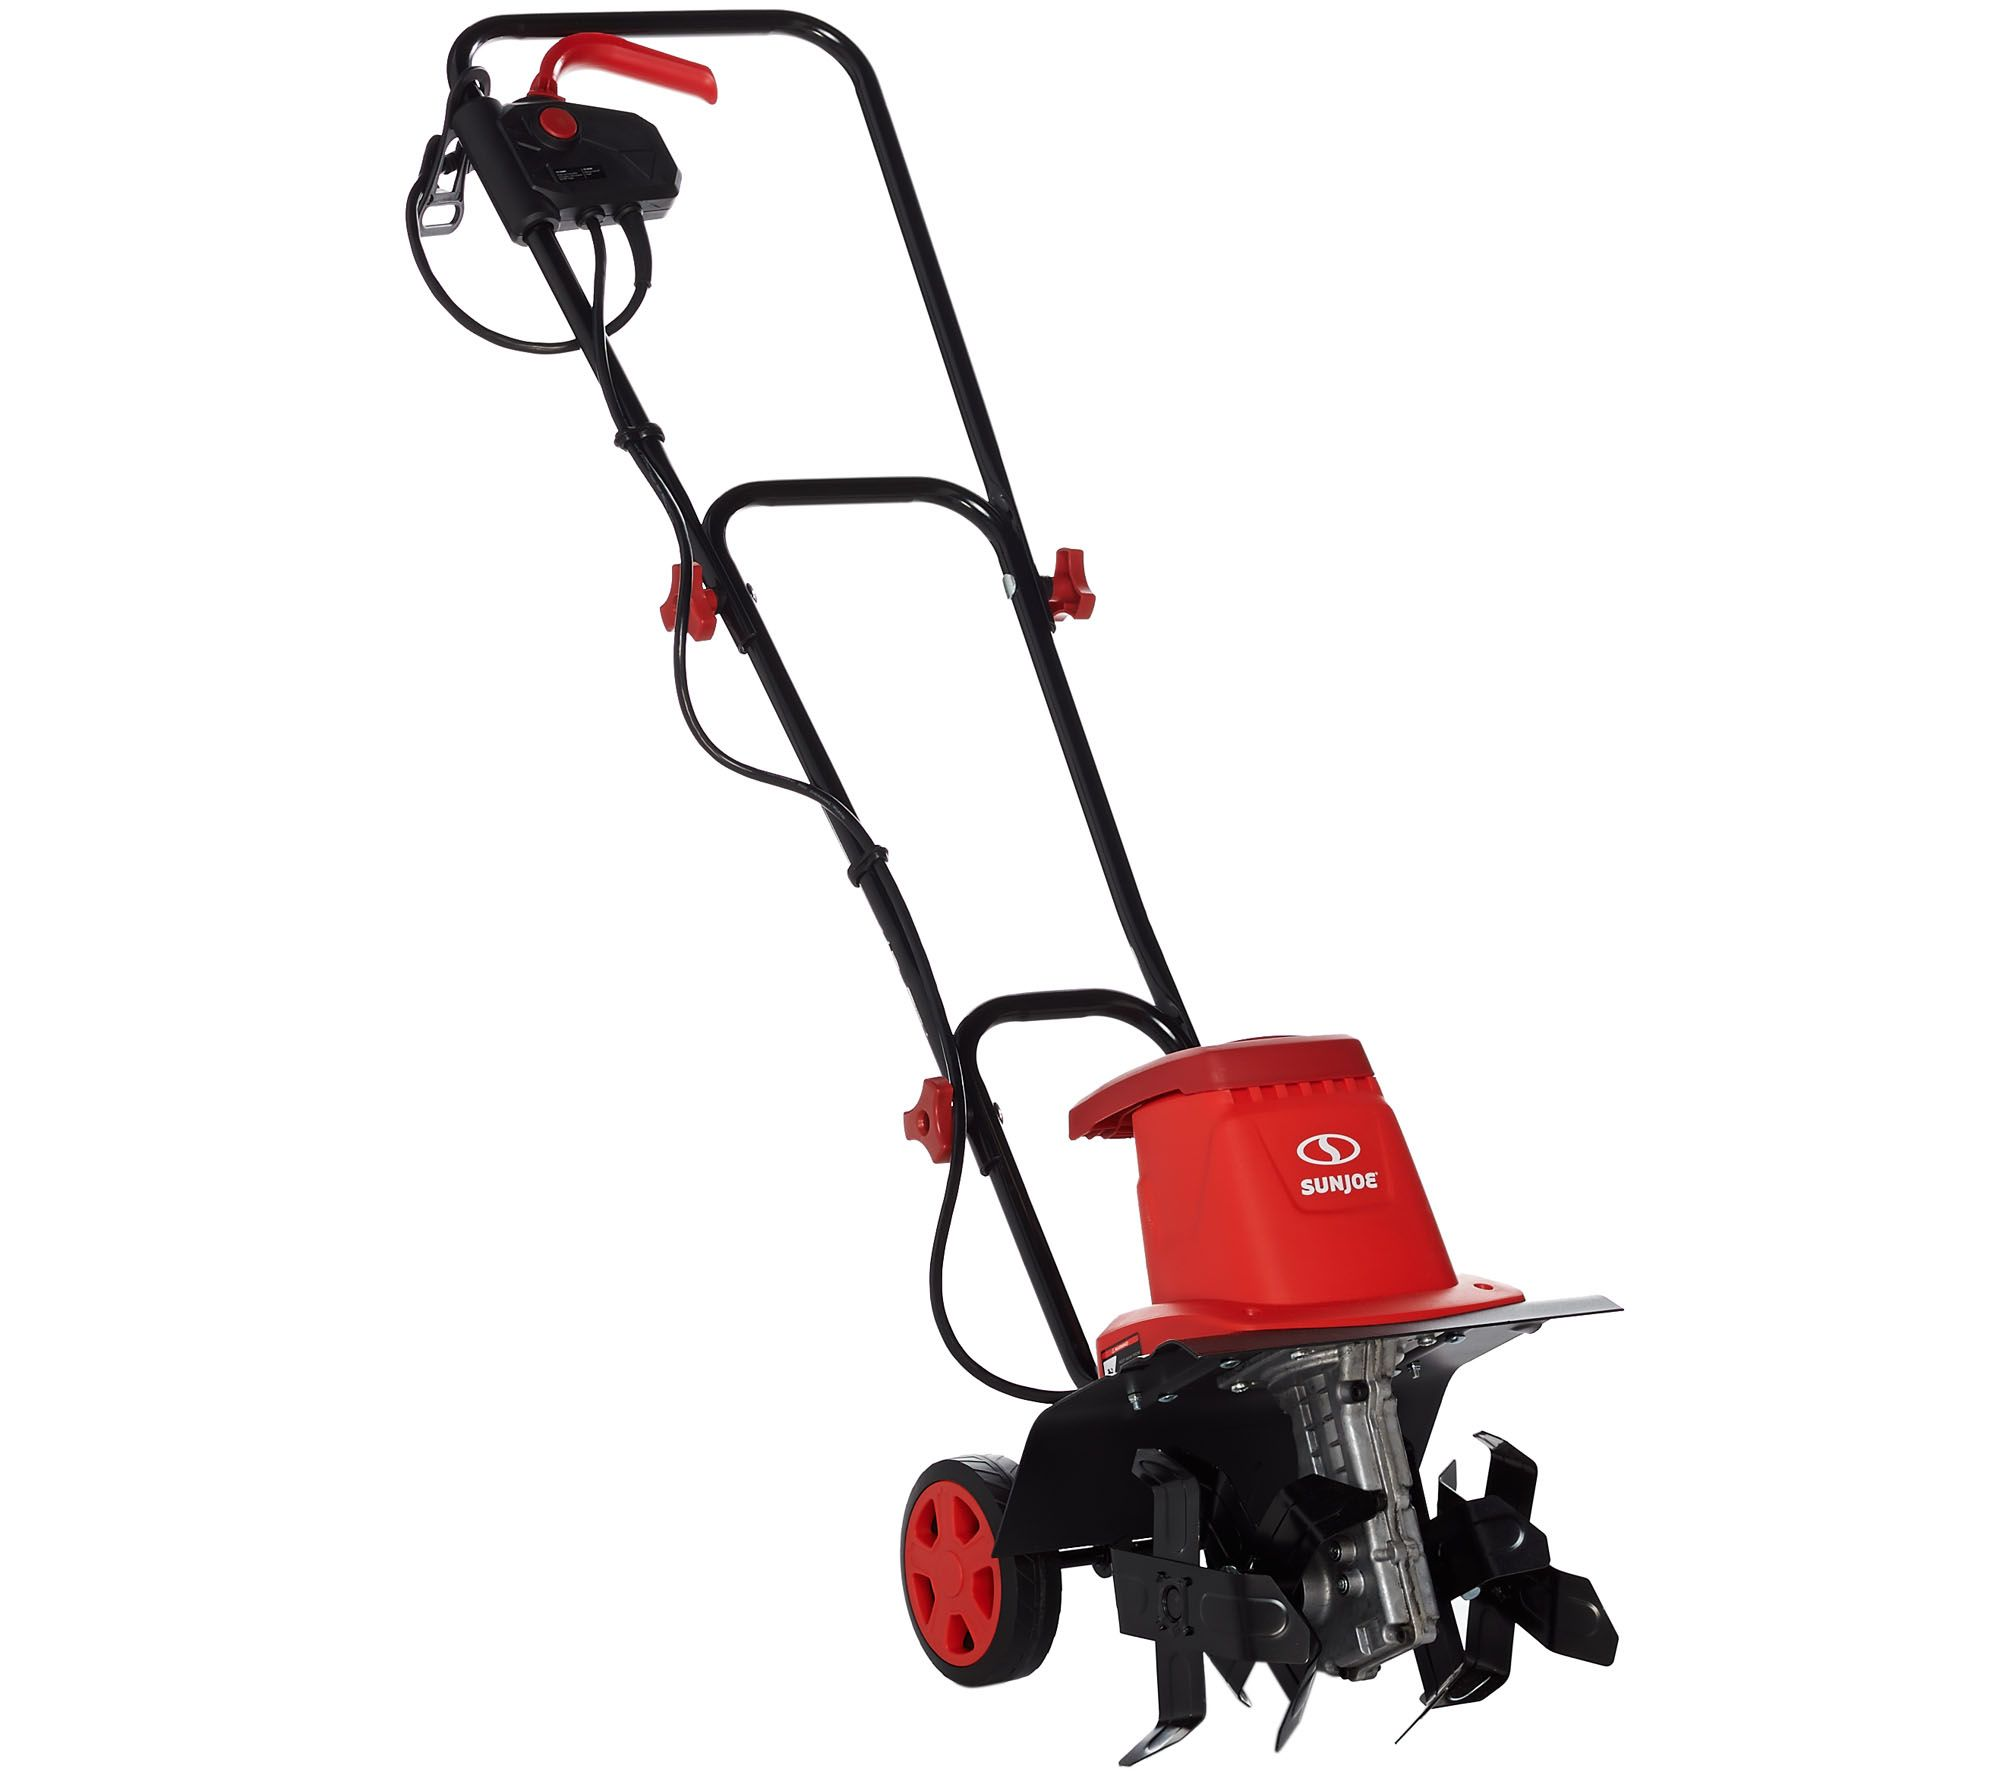 Sun Joe Electric Garden Tiller and Cultivator w25 Amp Motor